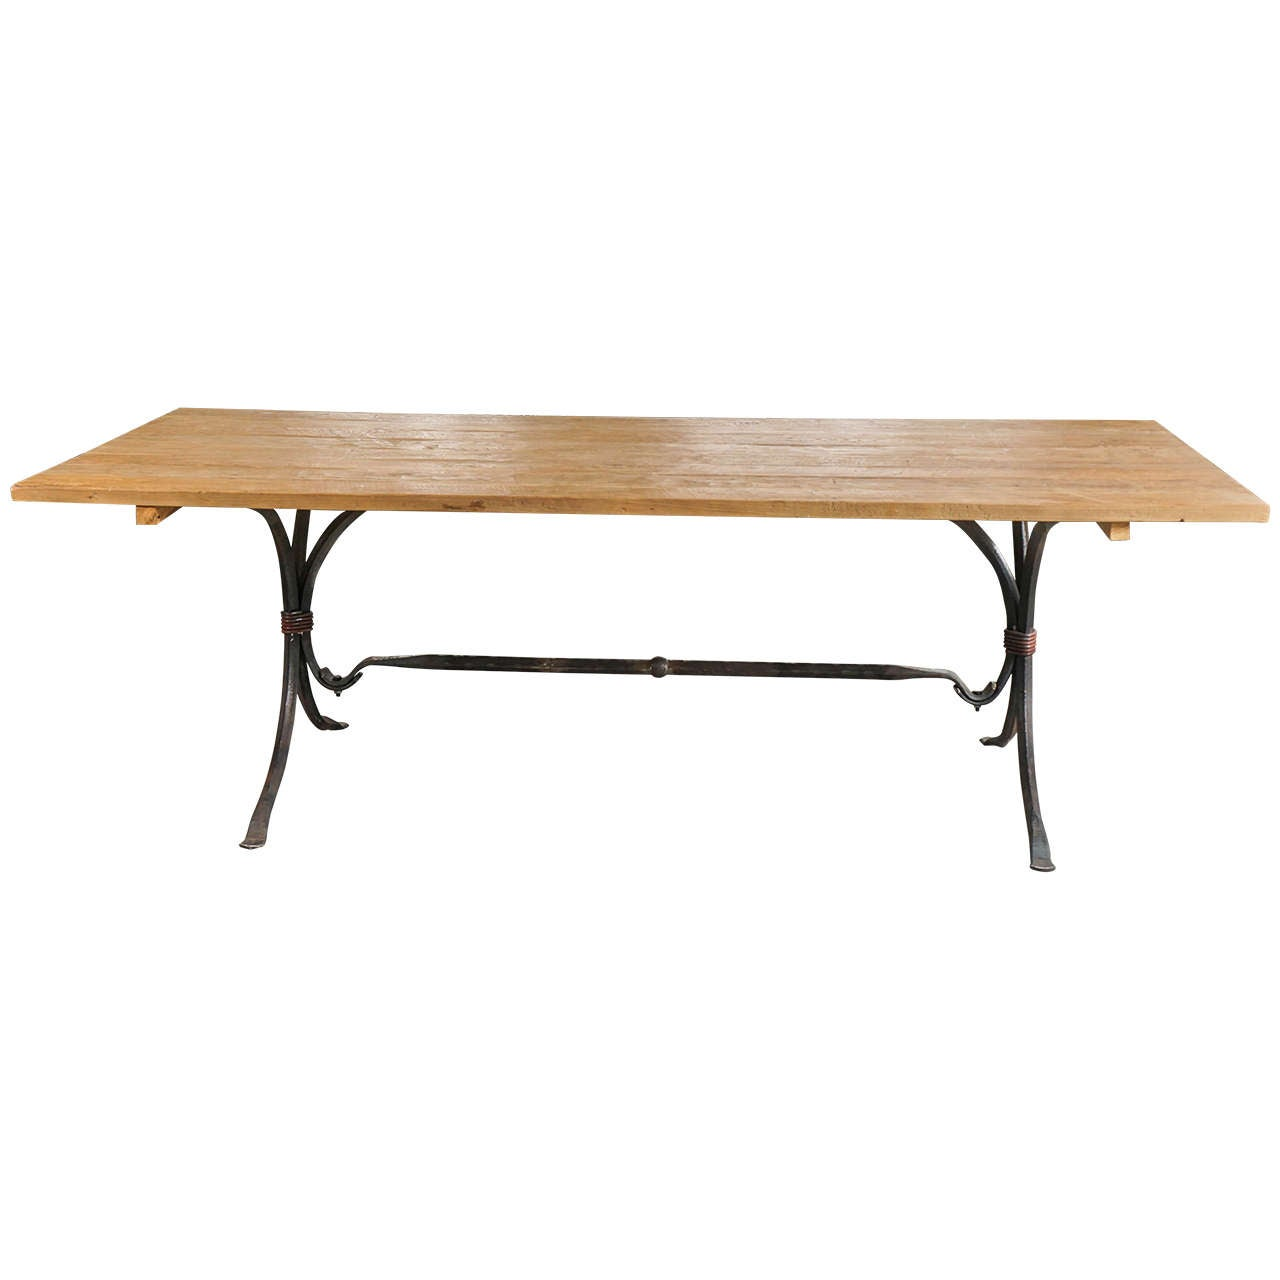 Teakwood And Wrought Iron Indoor And Outdoor Dining Table For Sale At